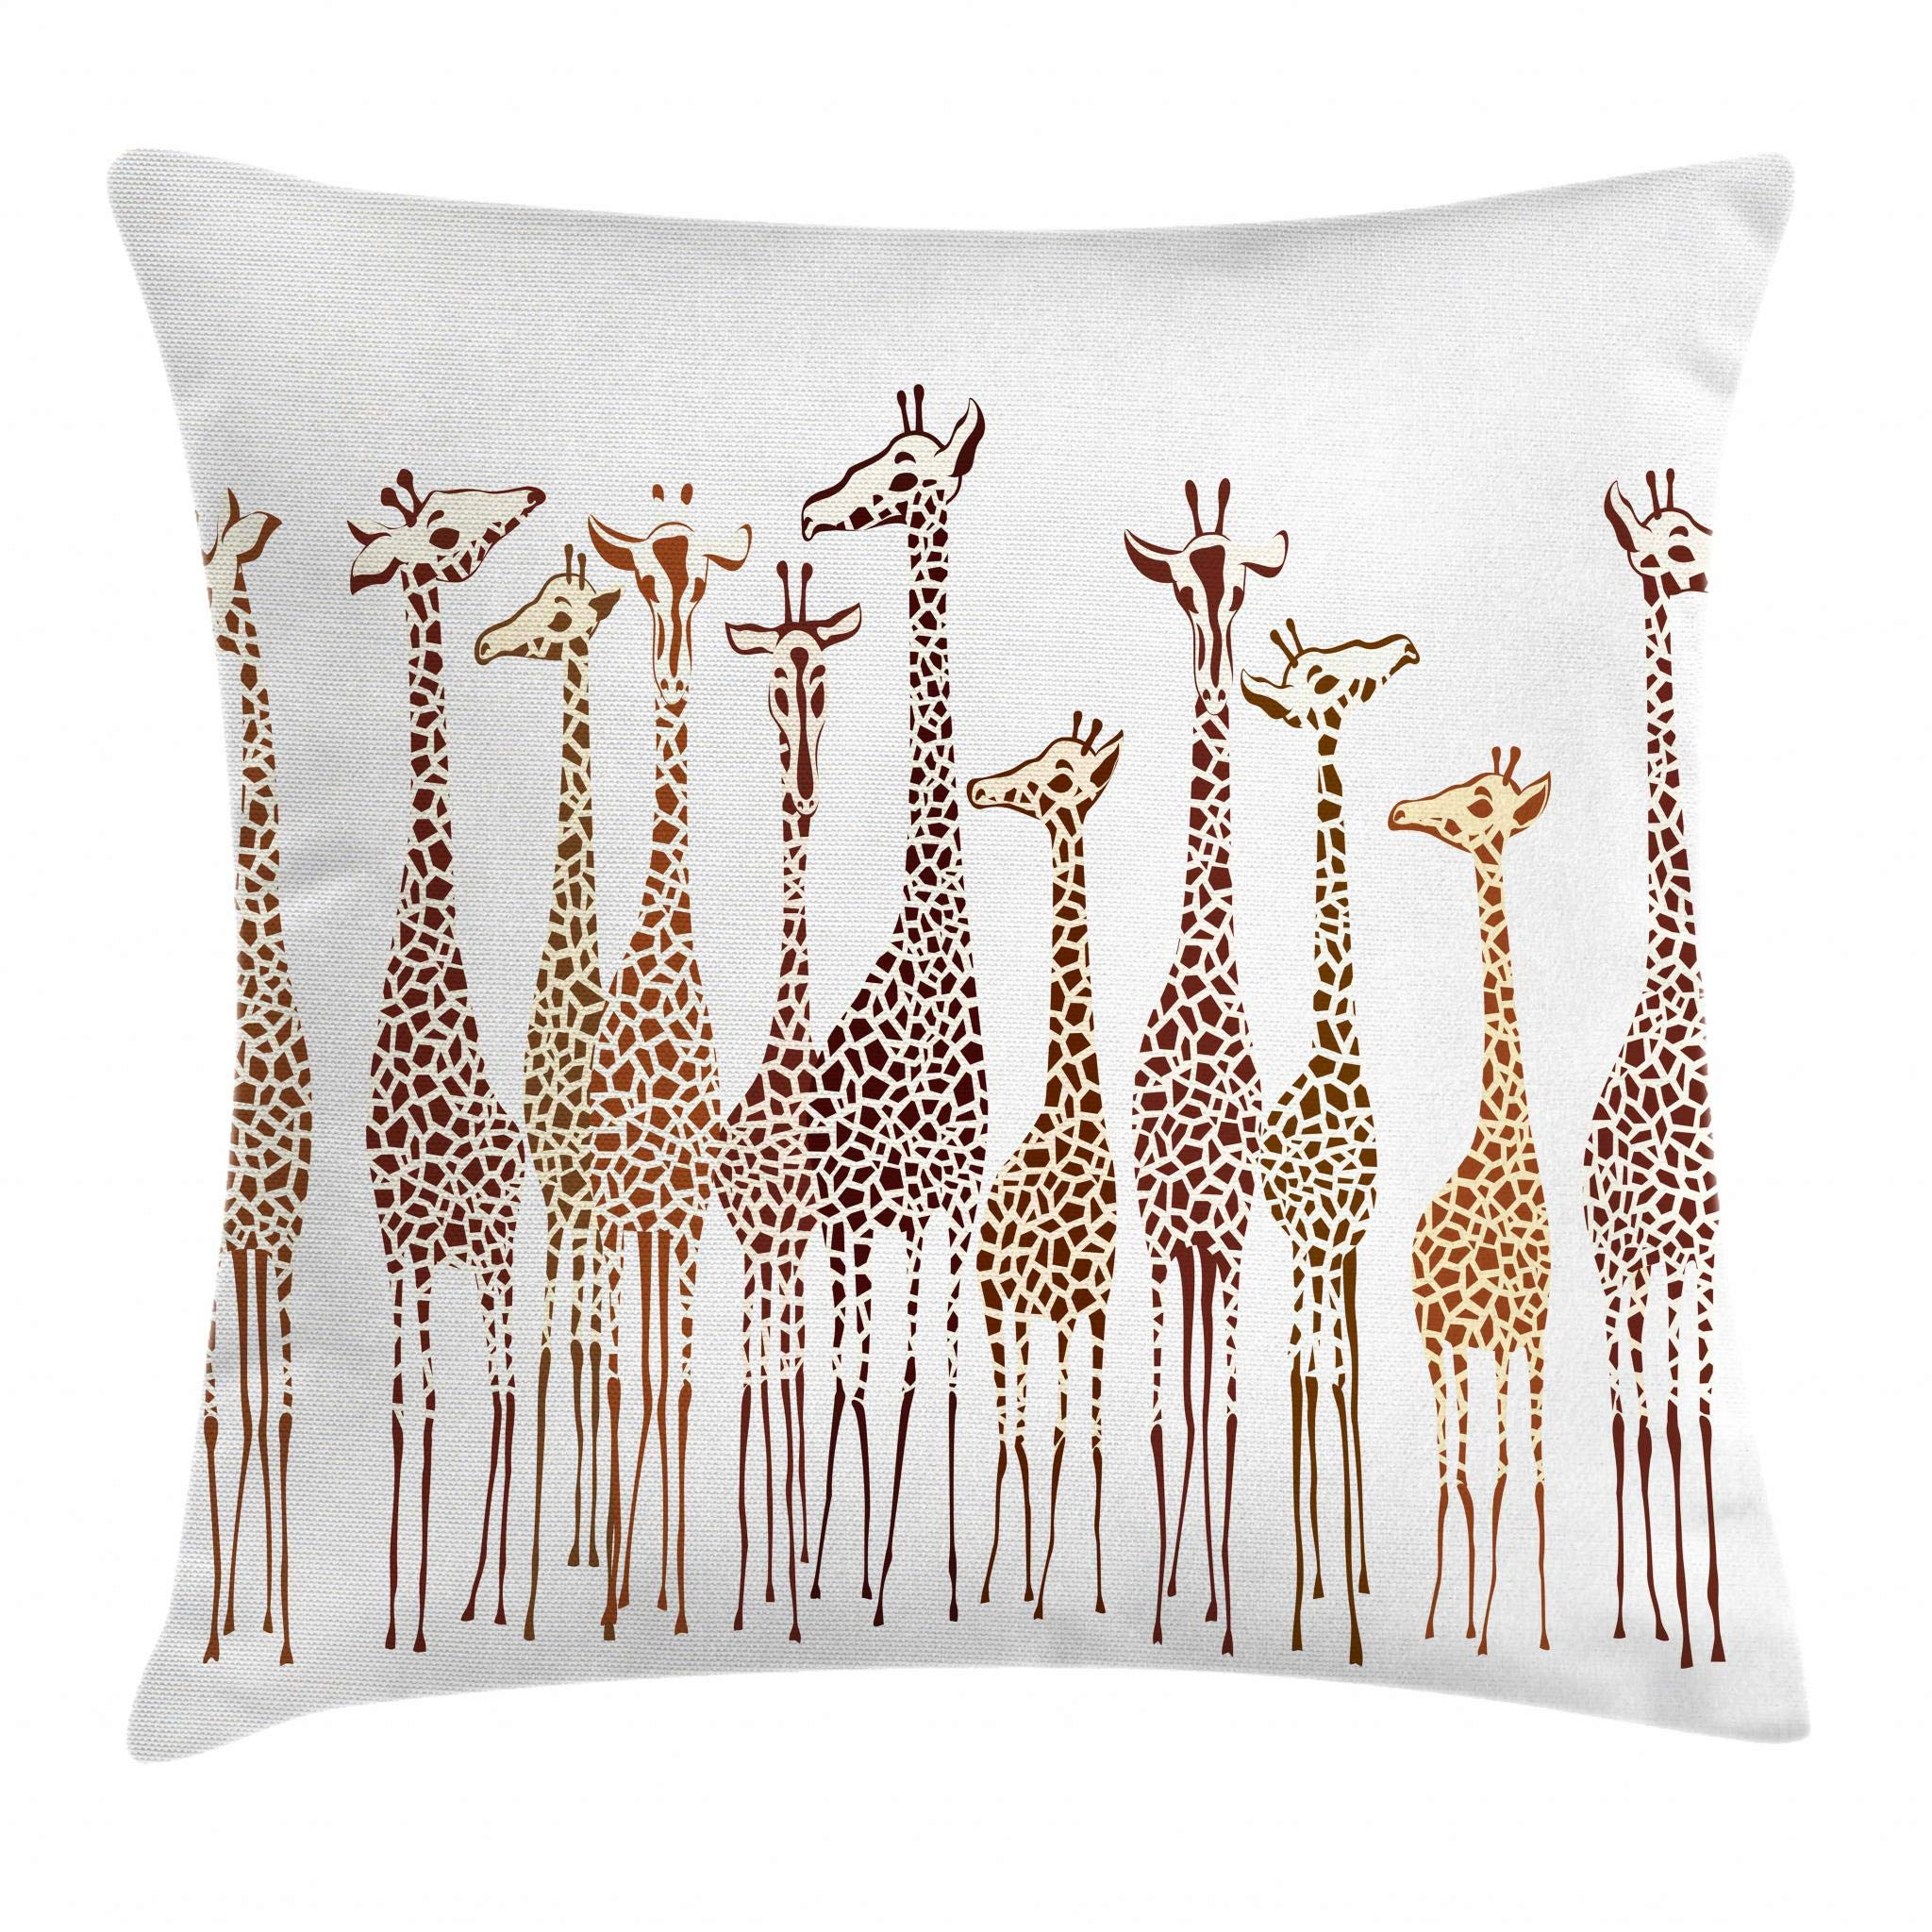 Lunarable Safari Throw Pillow Cushion Cover, Tropical Giraffes Exotic Climates Wilderness Savannah Animals Artful Illustration, Decorative Square Accent Pillow Case, 16 X 16 Inches, Multicolor